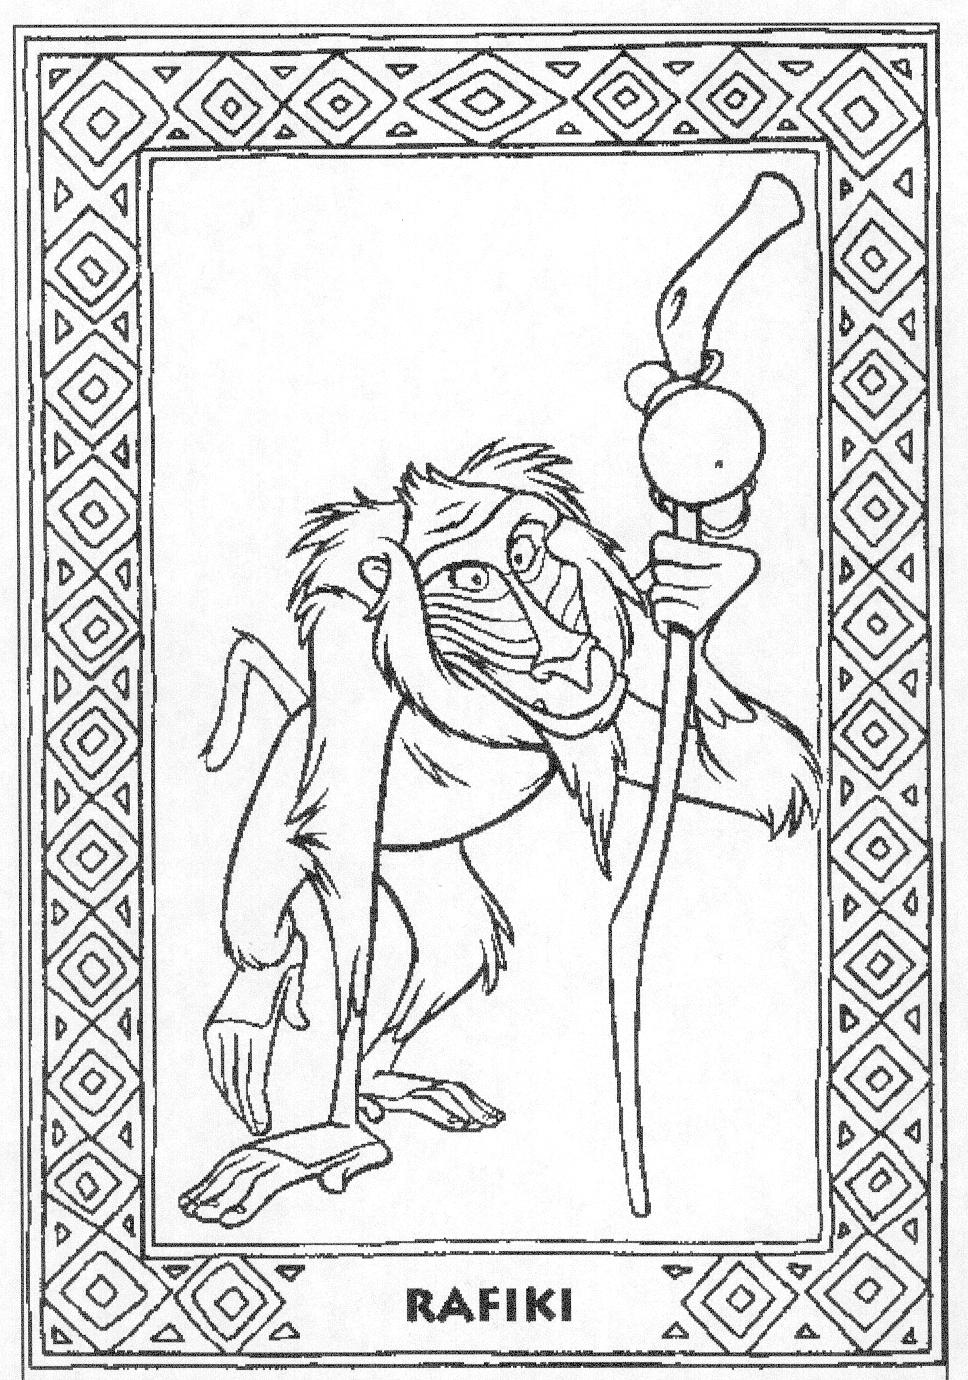 Coloring Pages The Lion King: Animated Images, Gifs